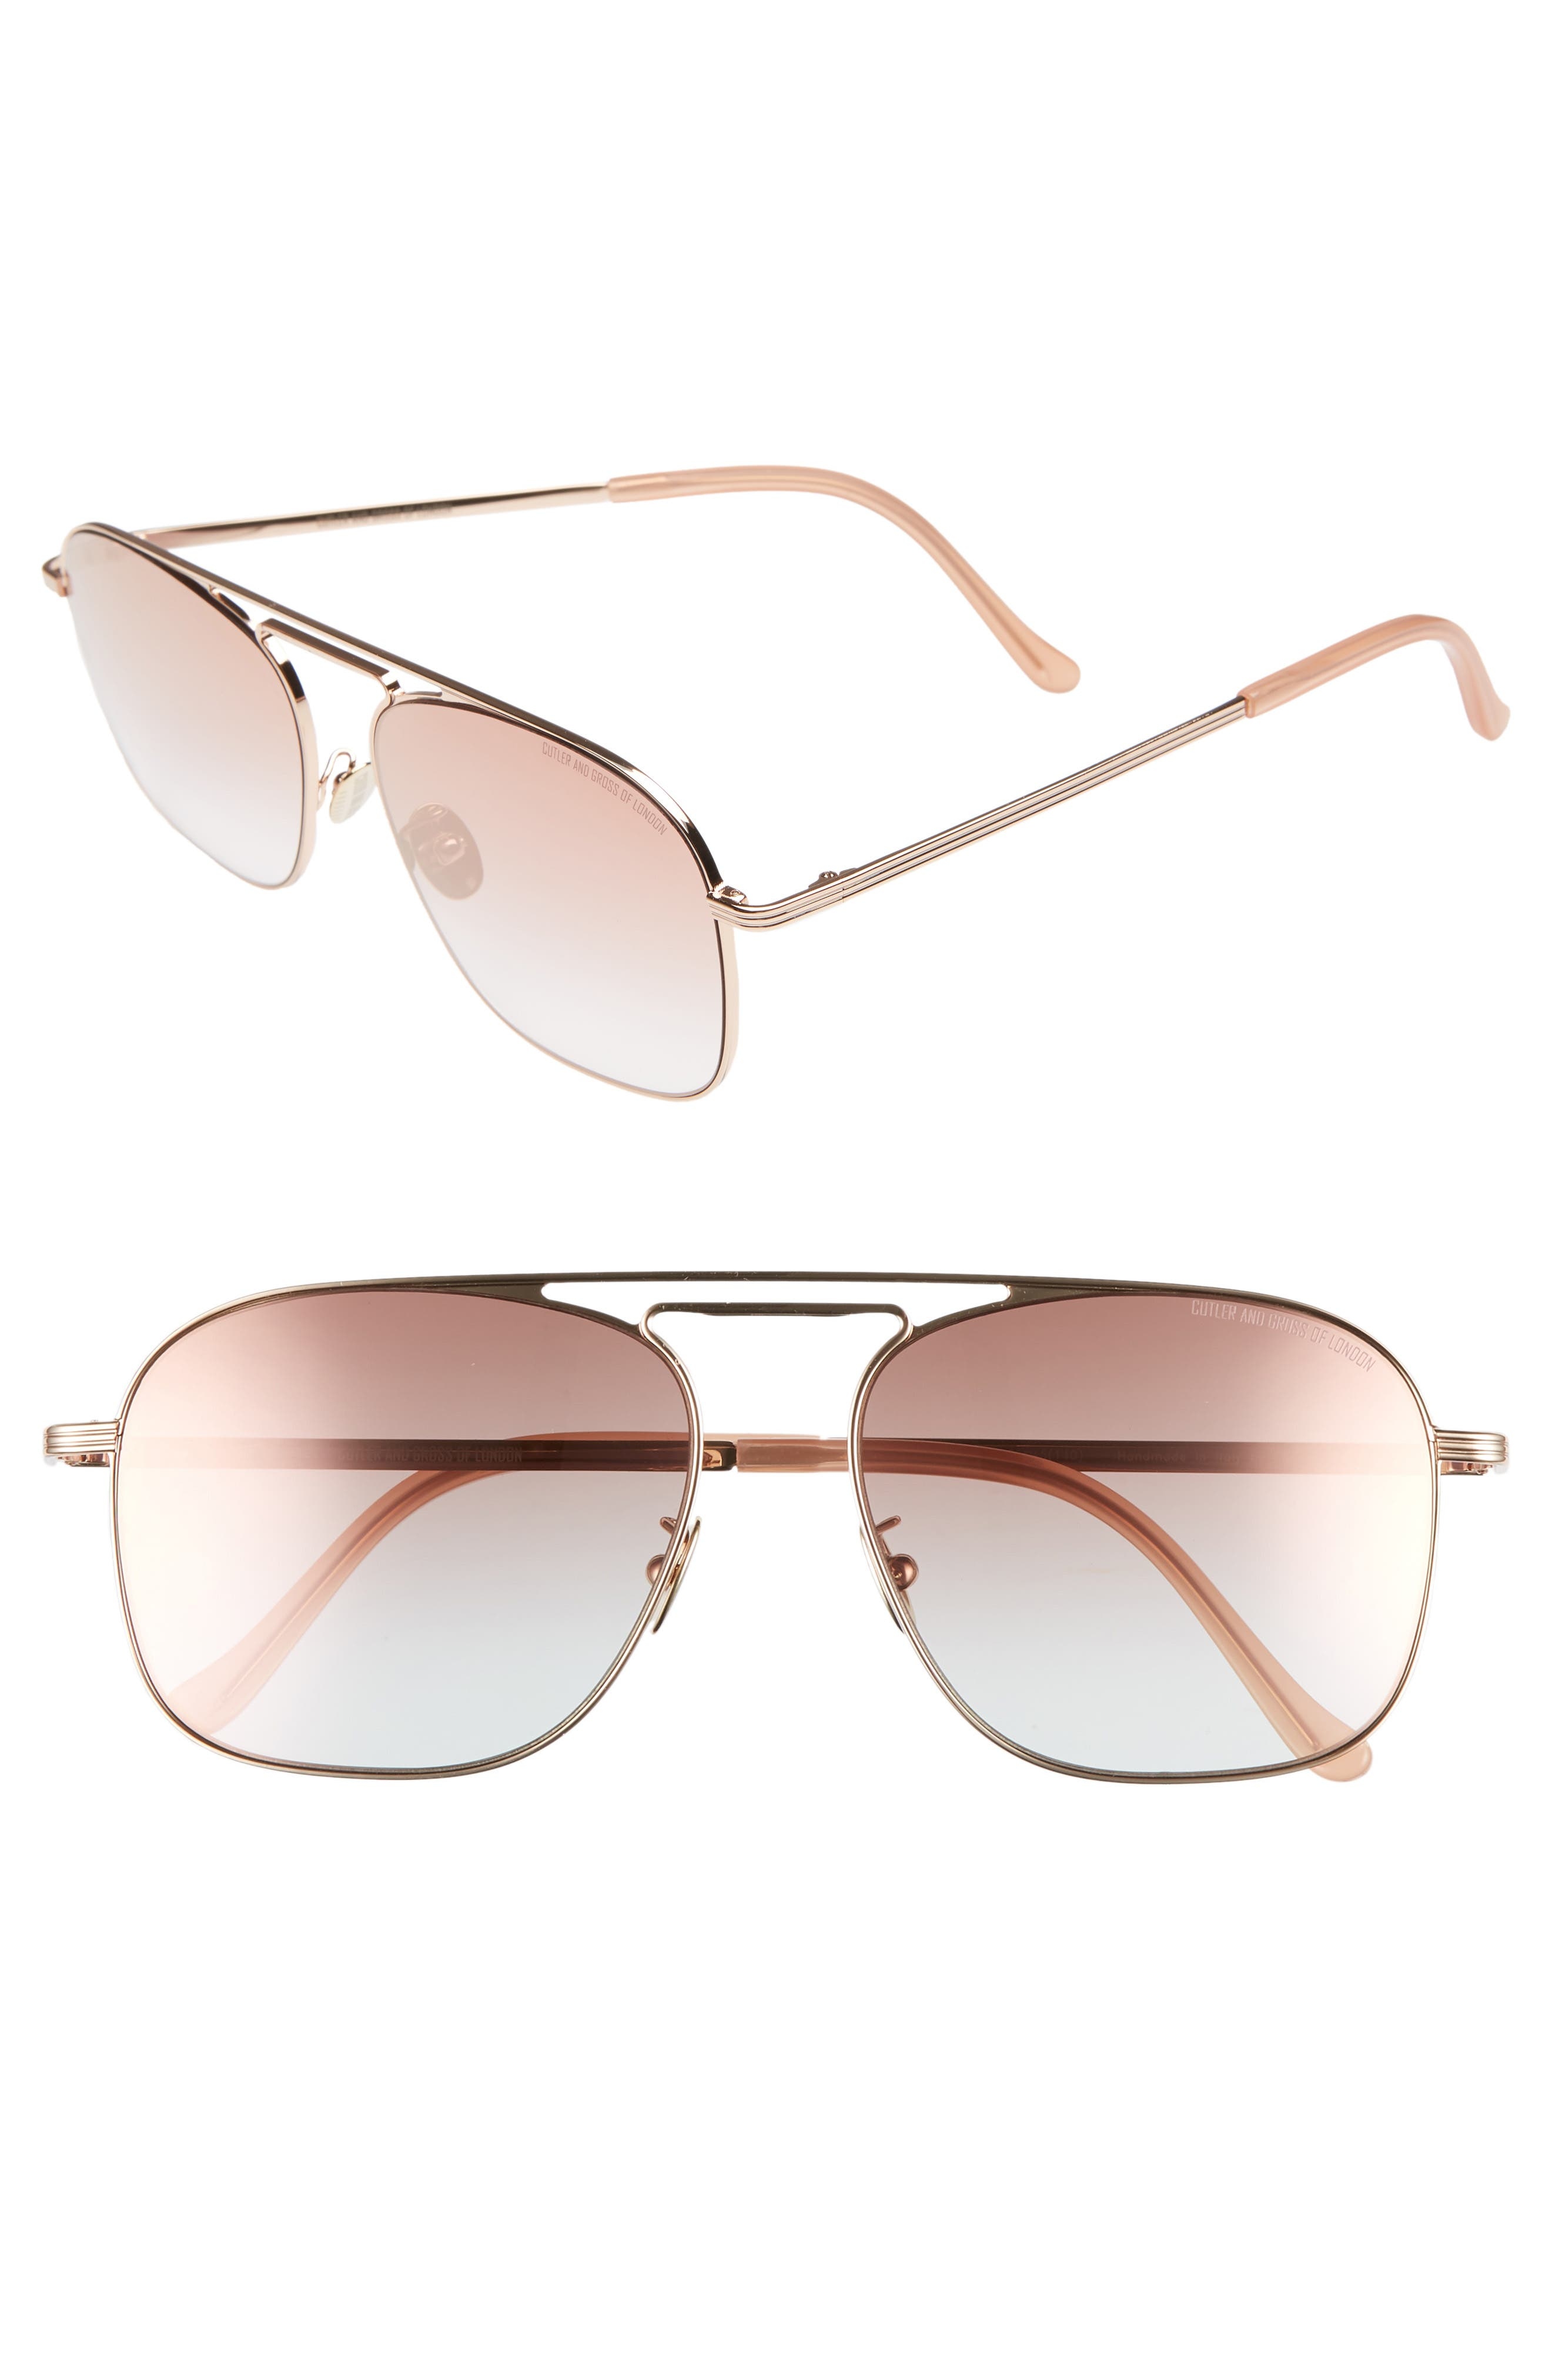 CUTLER AND GROSS 56MM POLARIZED NAVIGATOR SUNGLASSES - ROSE GOLD/ PINK CHAMPAGNE